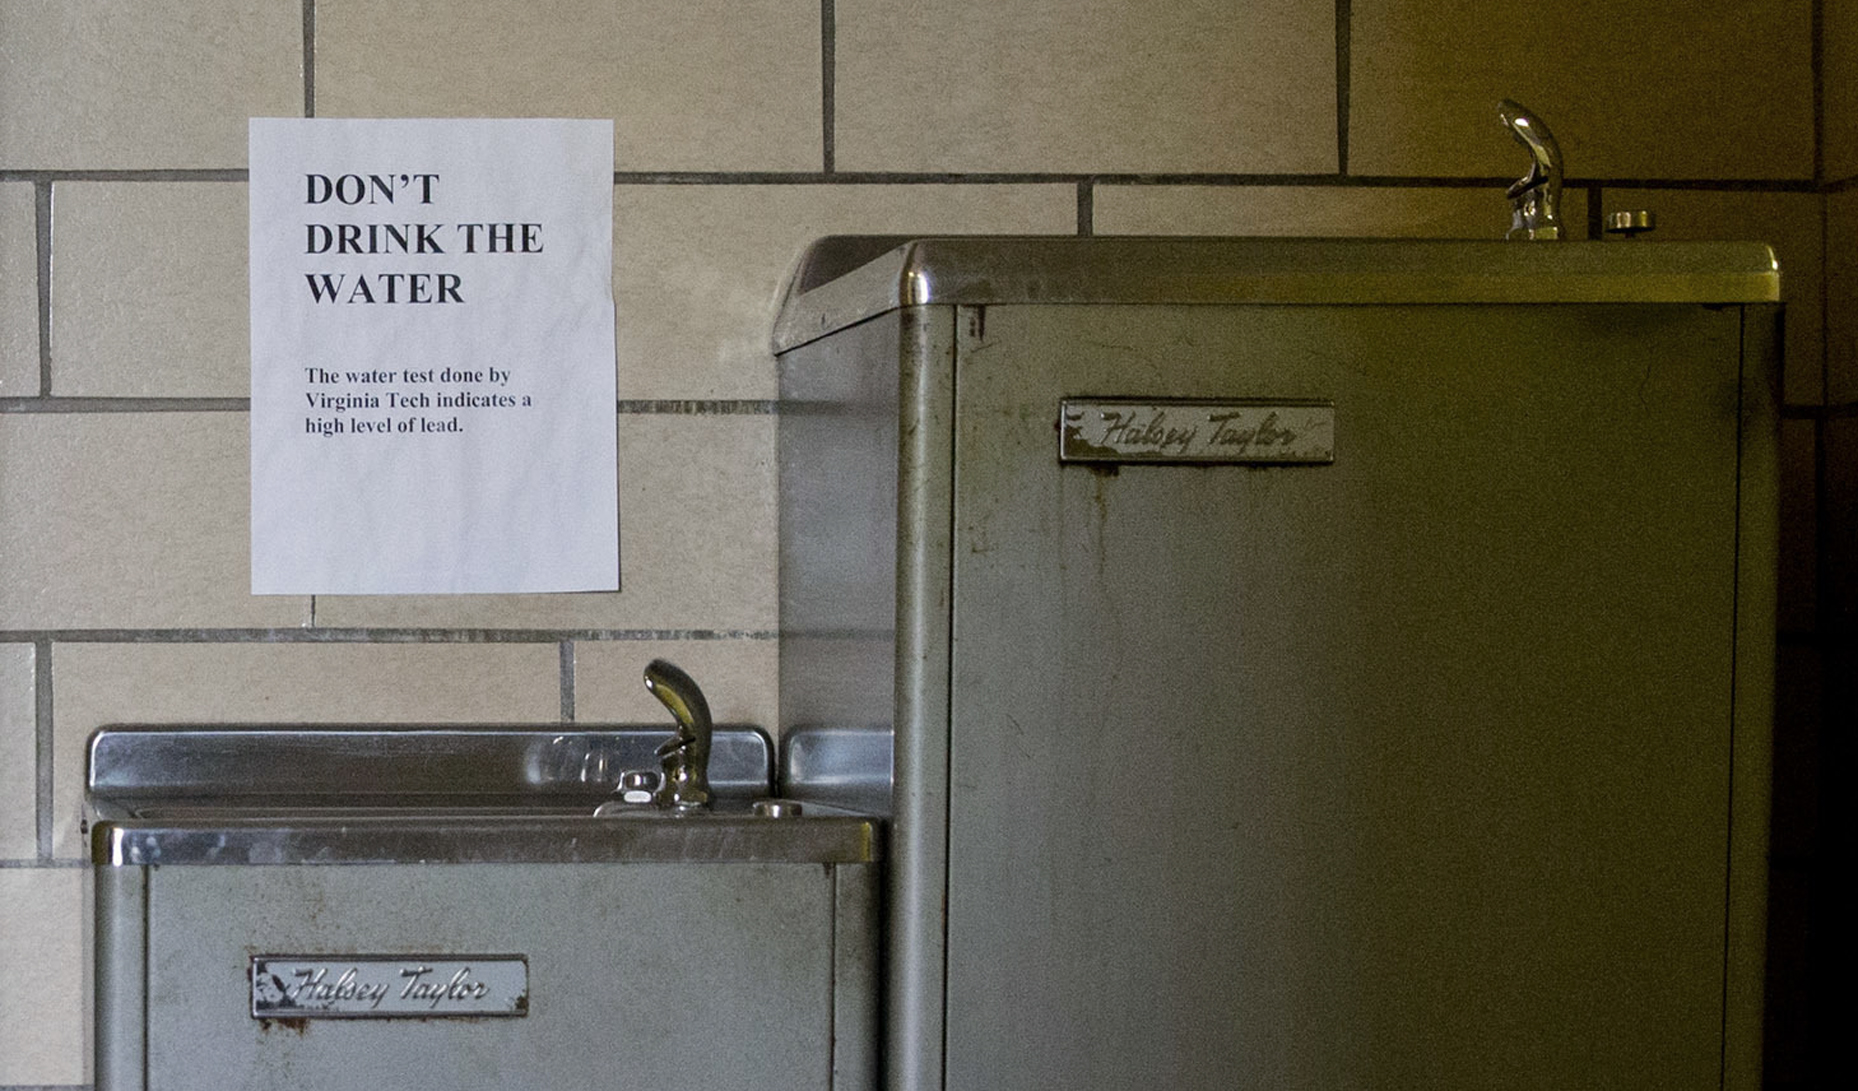 Not just Flint: Schools across America find lead in their water